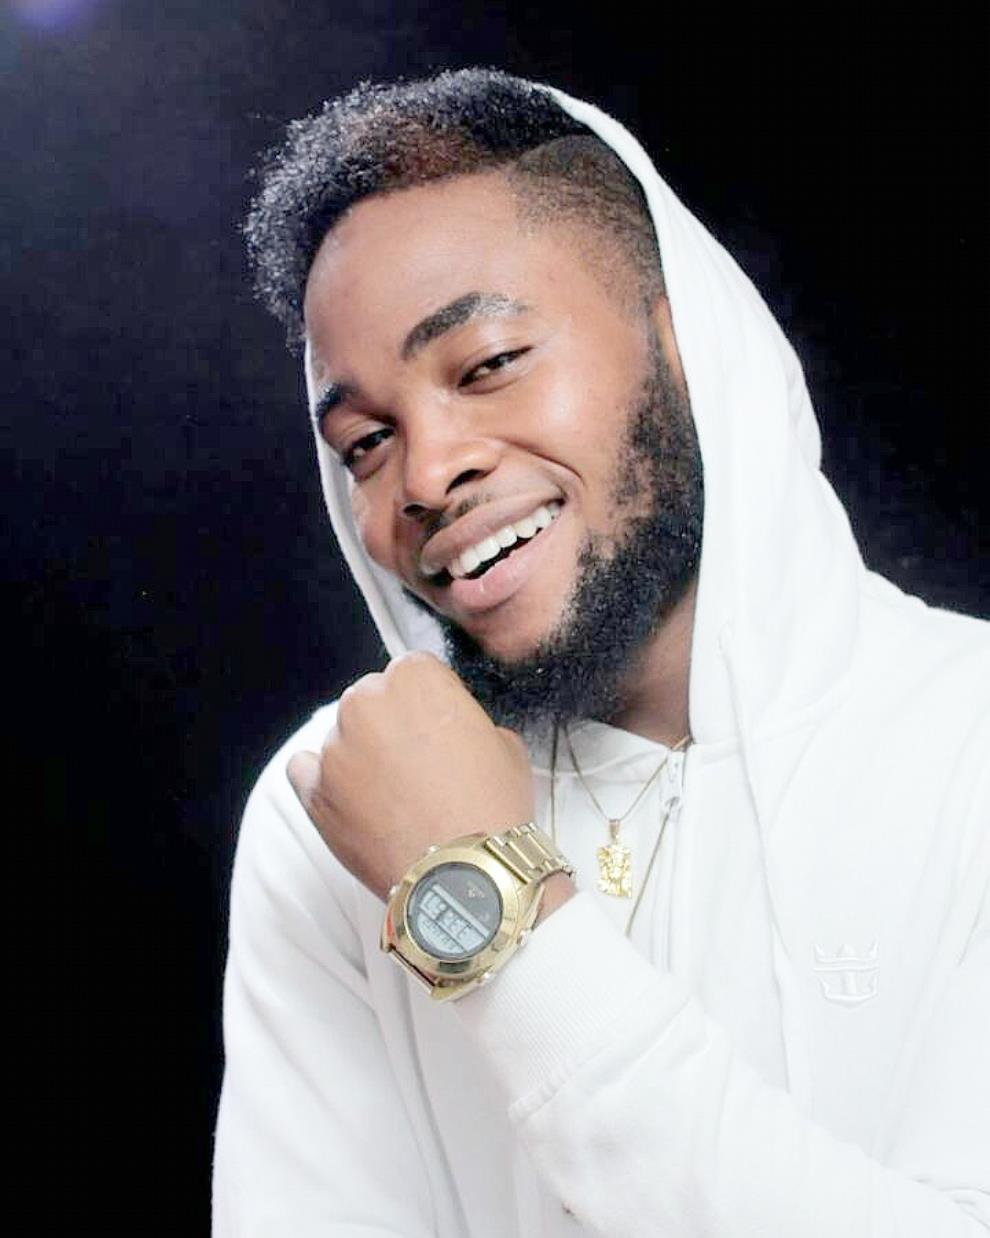 Wizbang Imc set to release his baddest tune alongside a video, features Luther